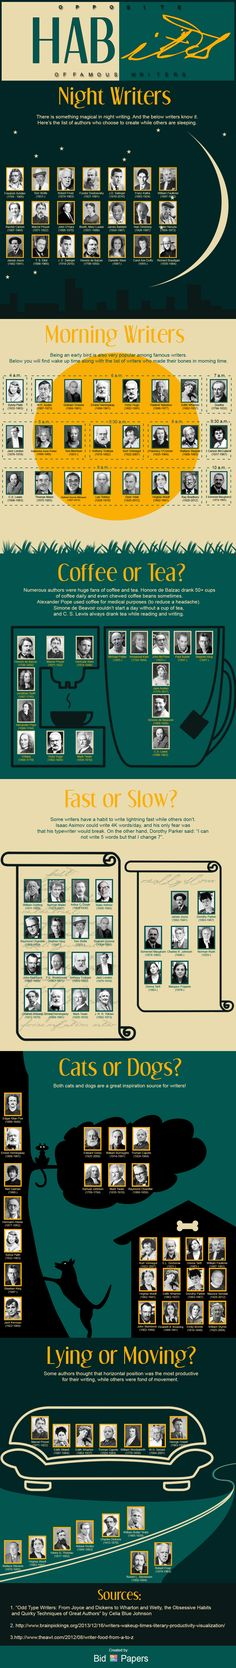 They say, habits define us. So let's take a look at habits of 100+ famous writers and try to extract some value from this info!